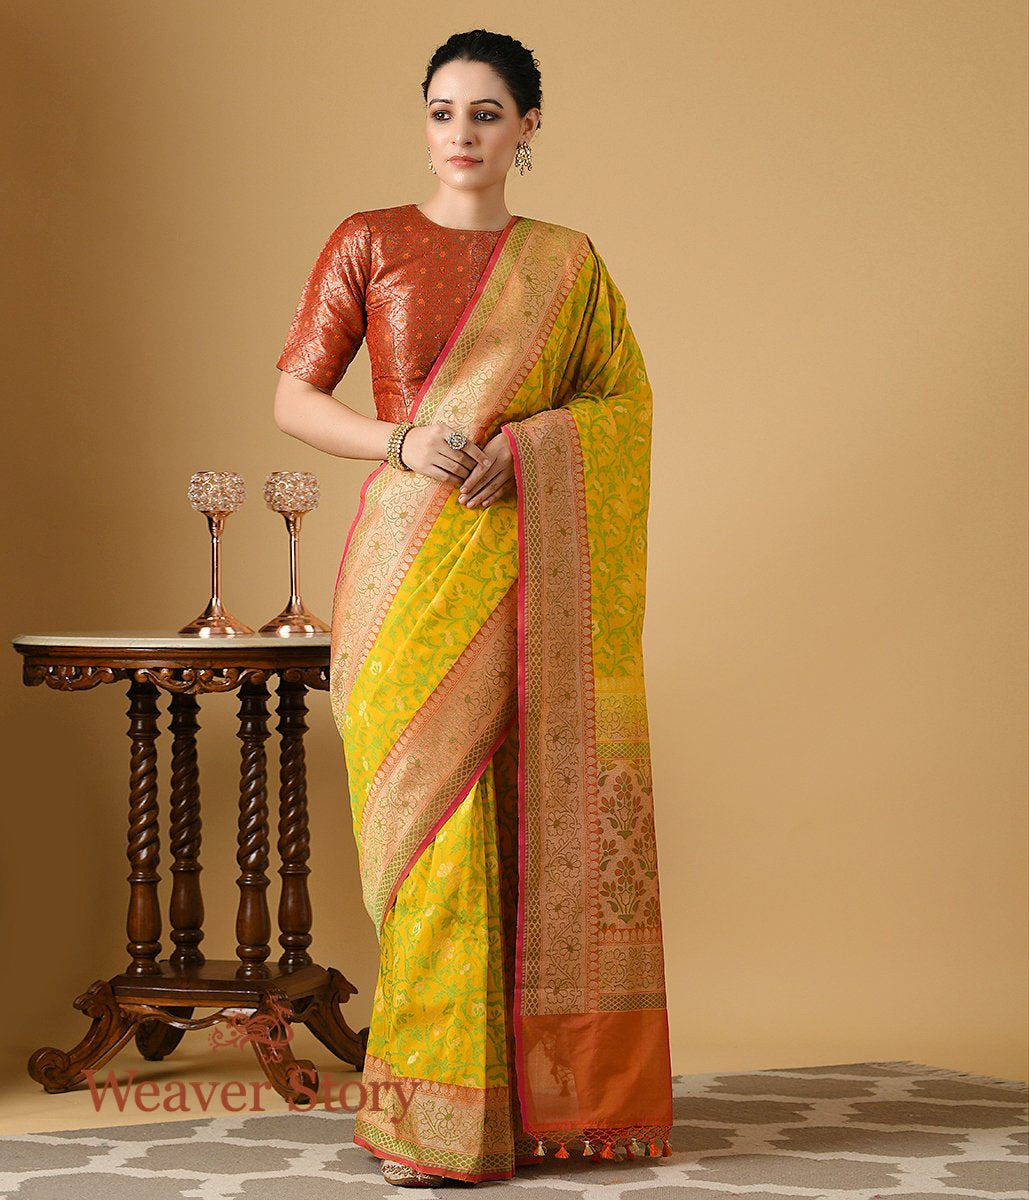 Handwoven Summer Silk Banarasi Saree in Yellow and Orange